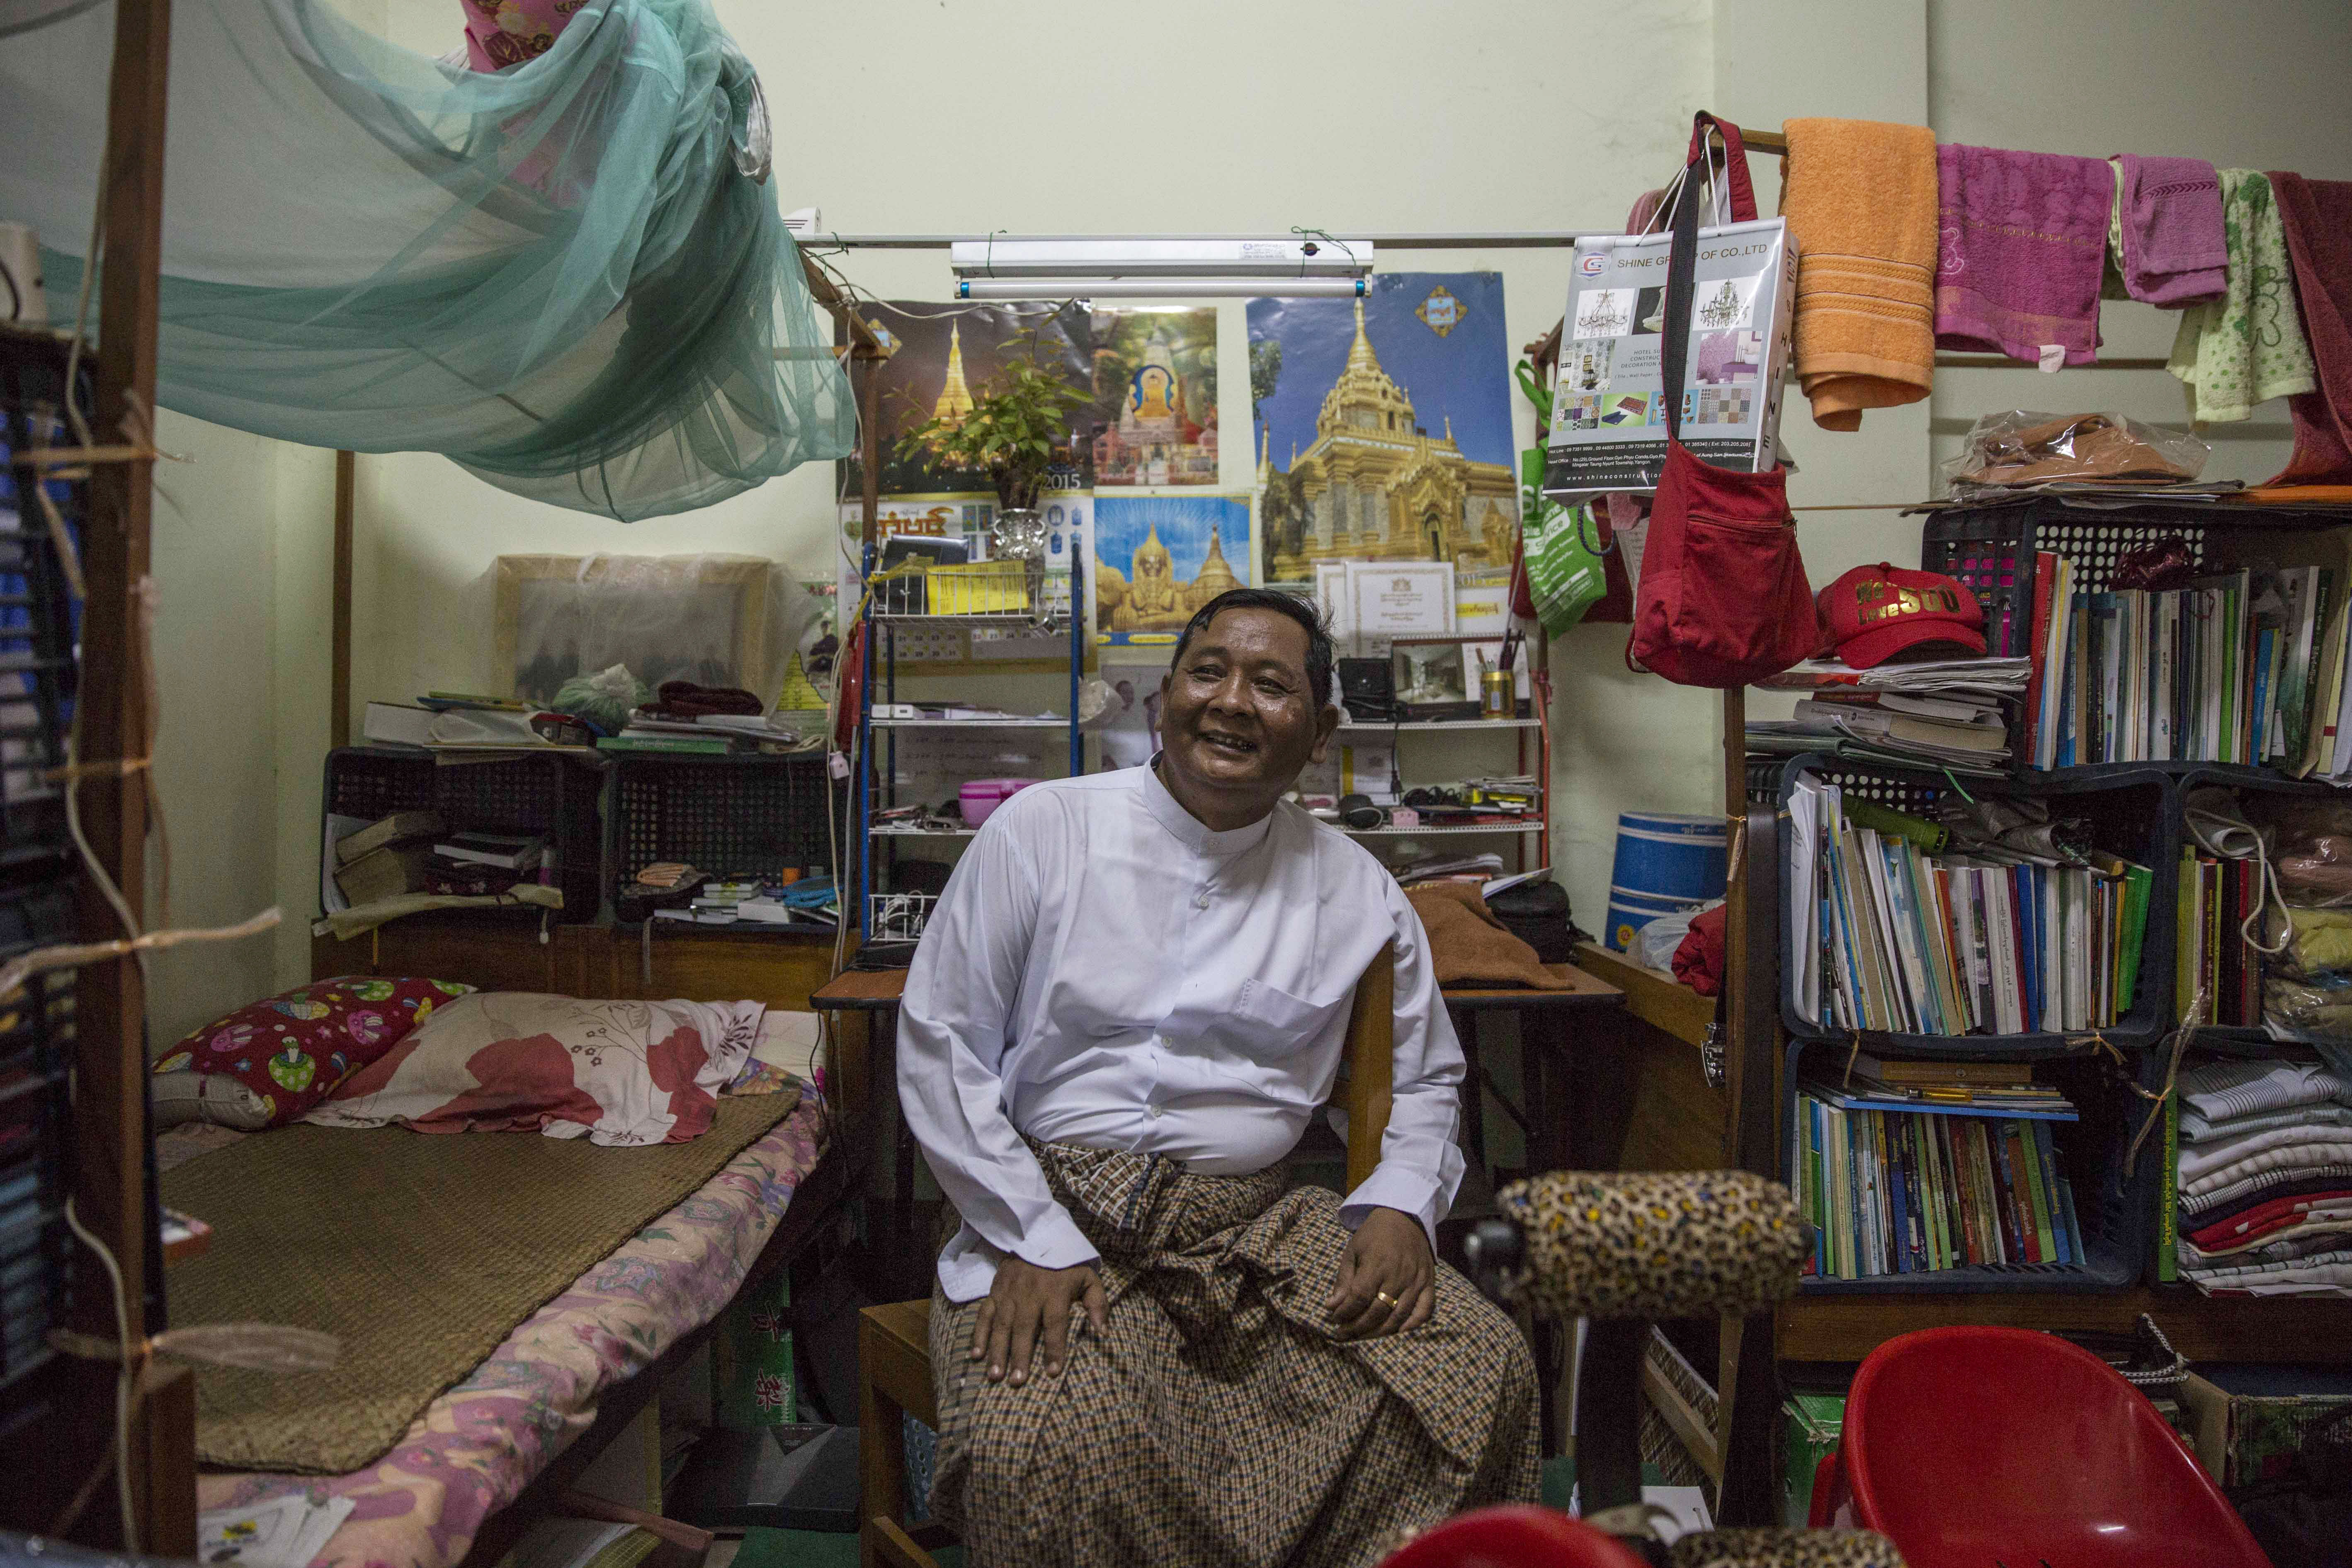 An NLD member of parliament sits in his dormitory room at the Sibin Guesthouse on March 9, 2016, in Naypyidaw, Burma